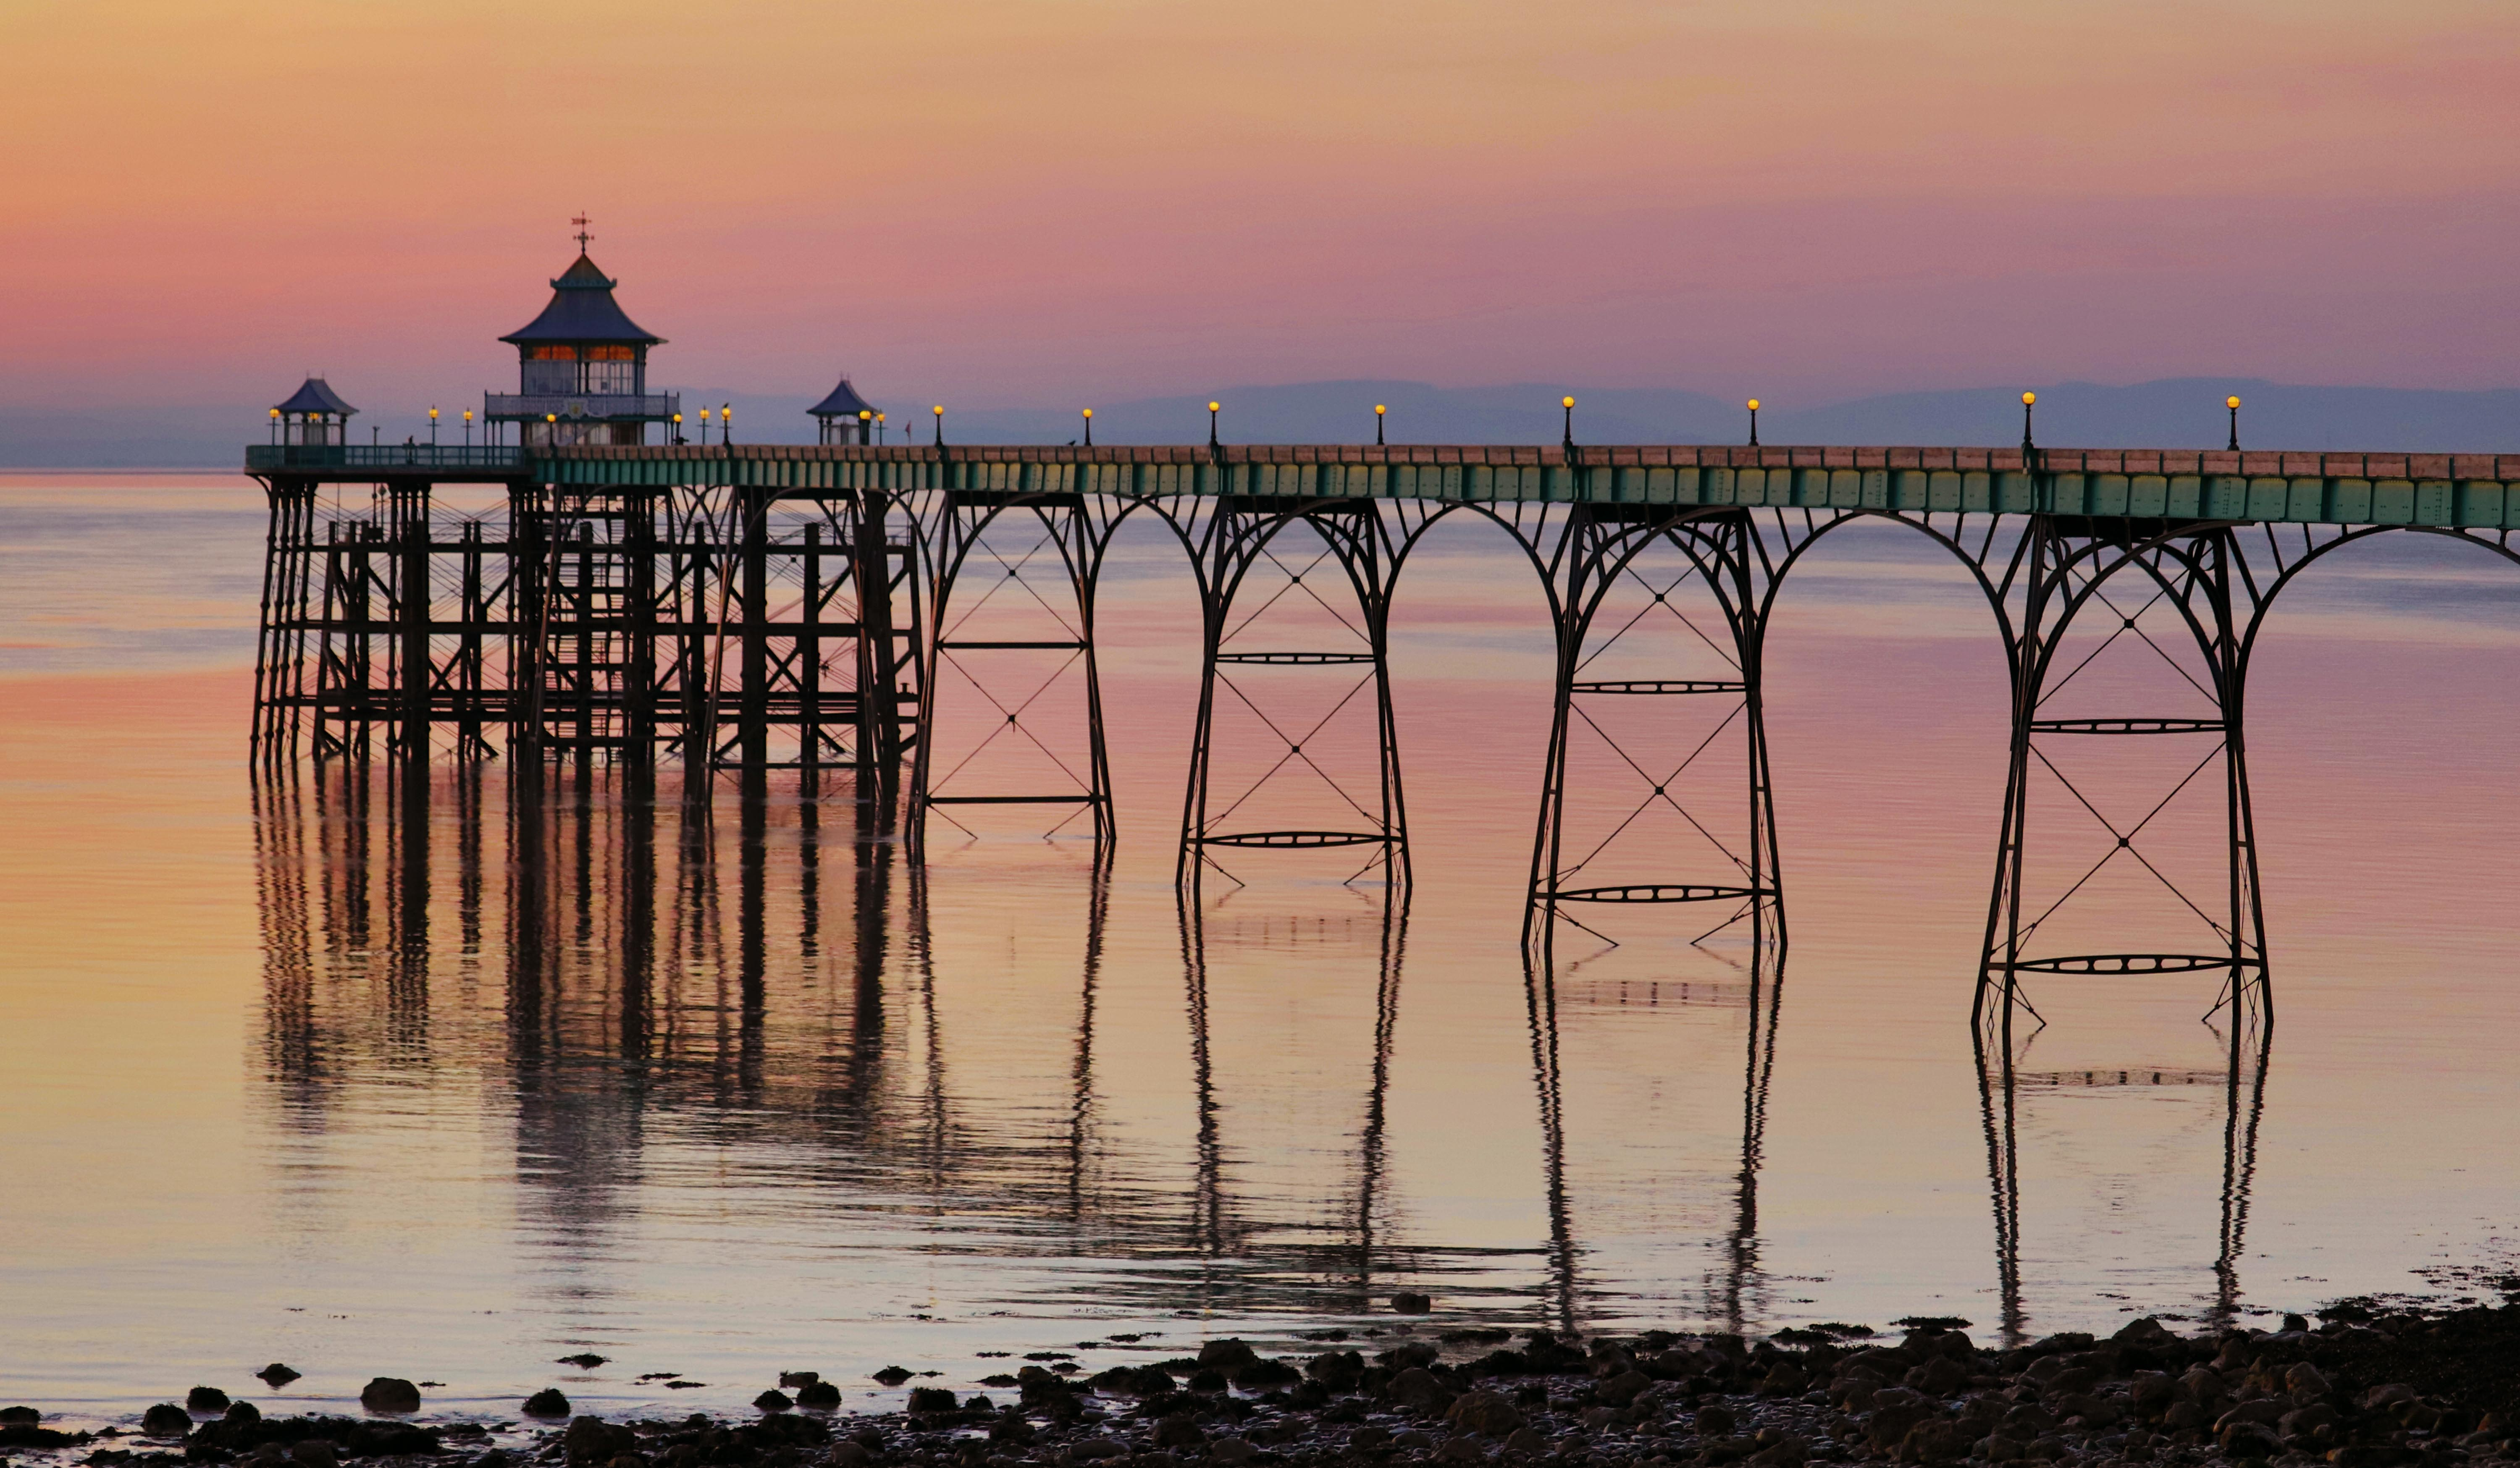 Grade 1 Listed Clevedon Pier